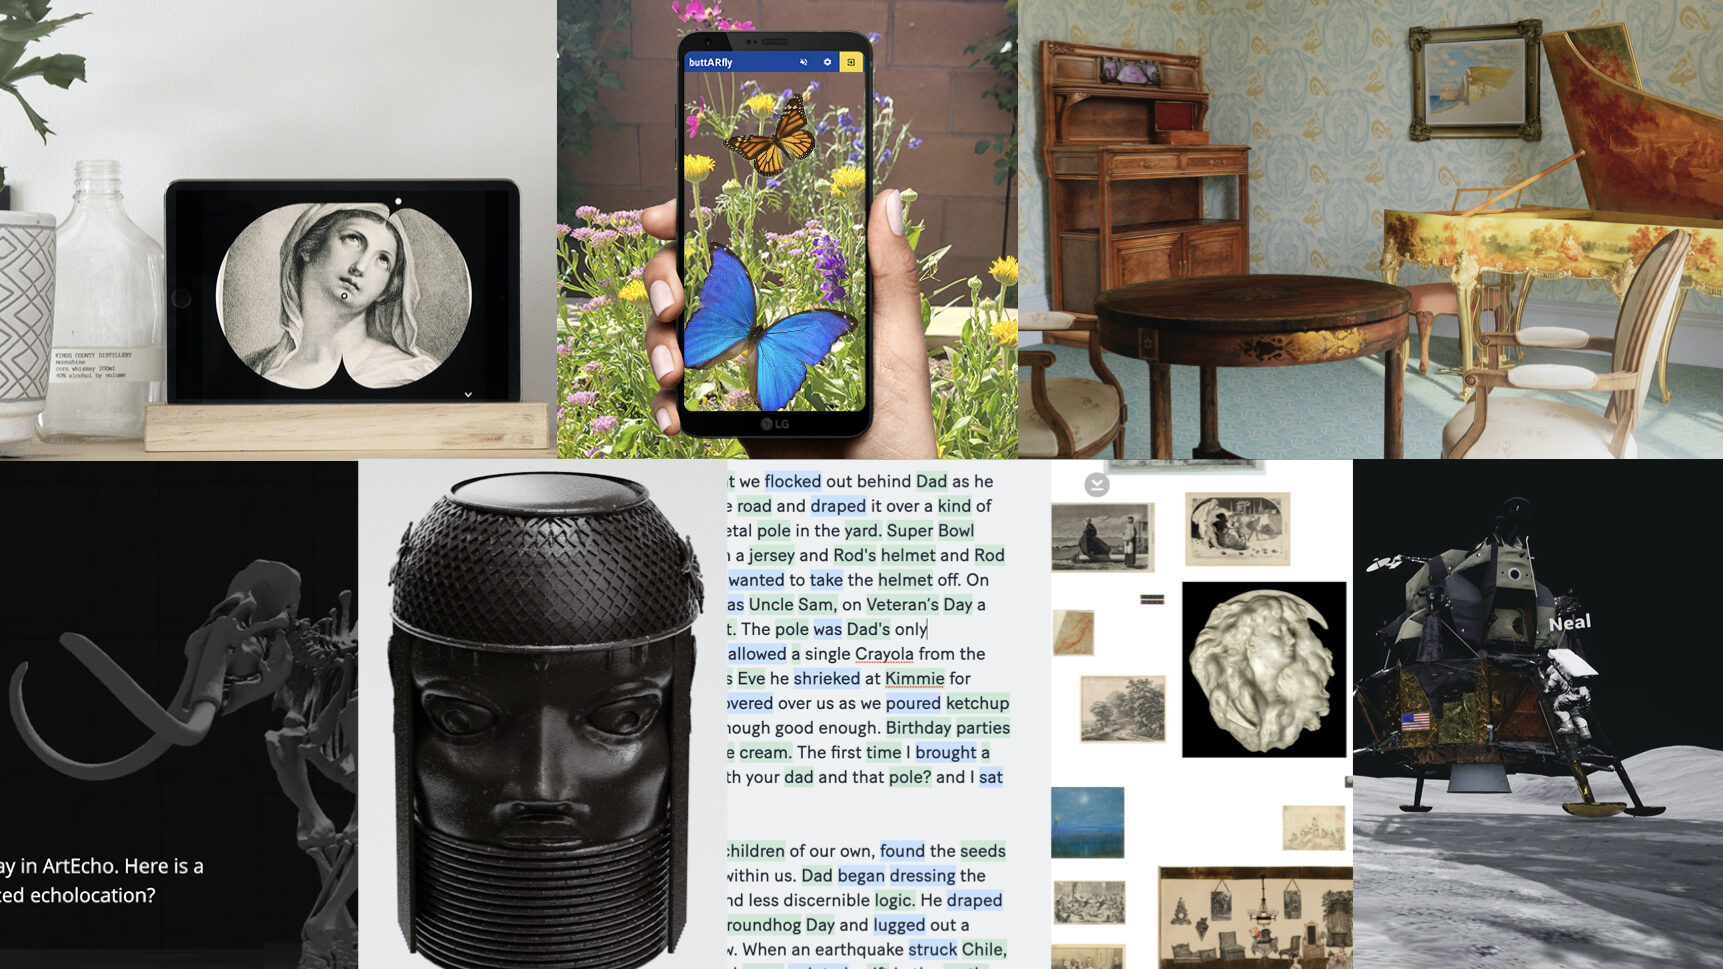 A collage of images showing digital applications related to museum collections